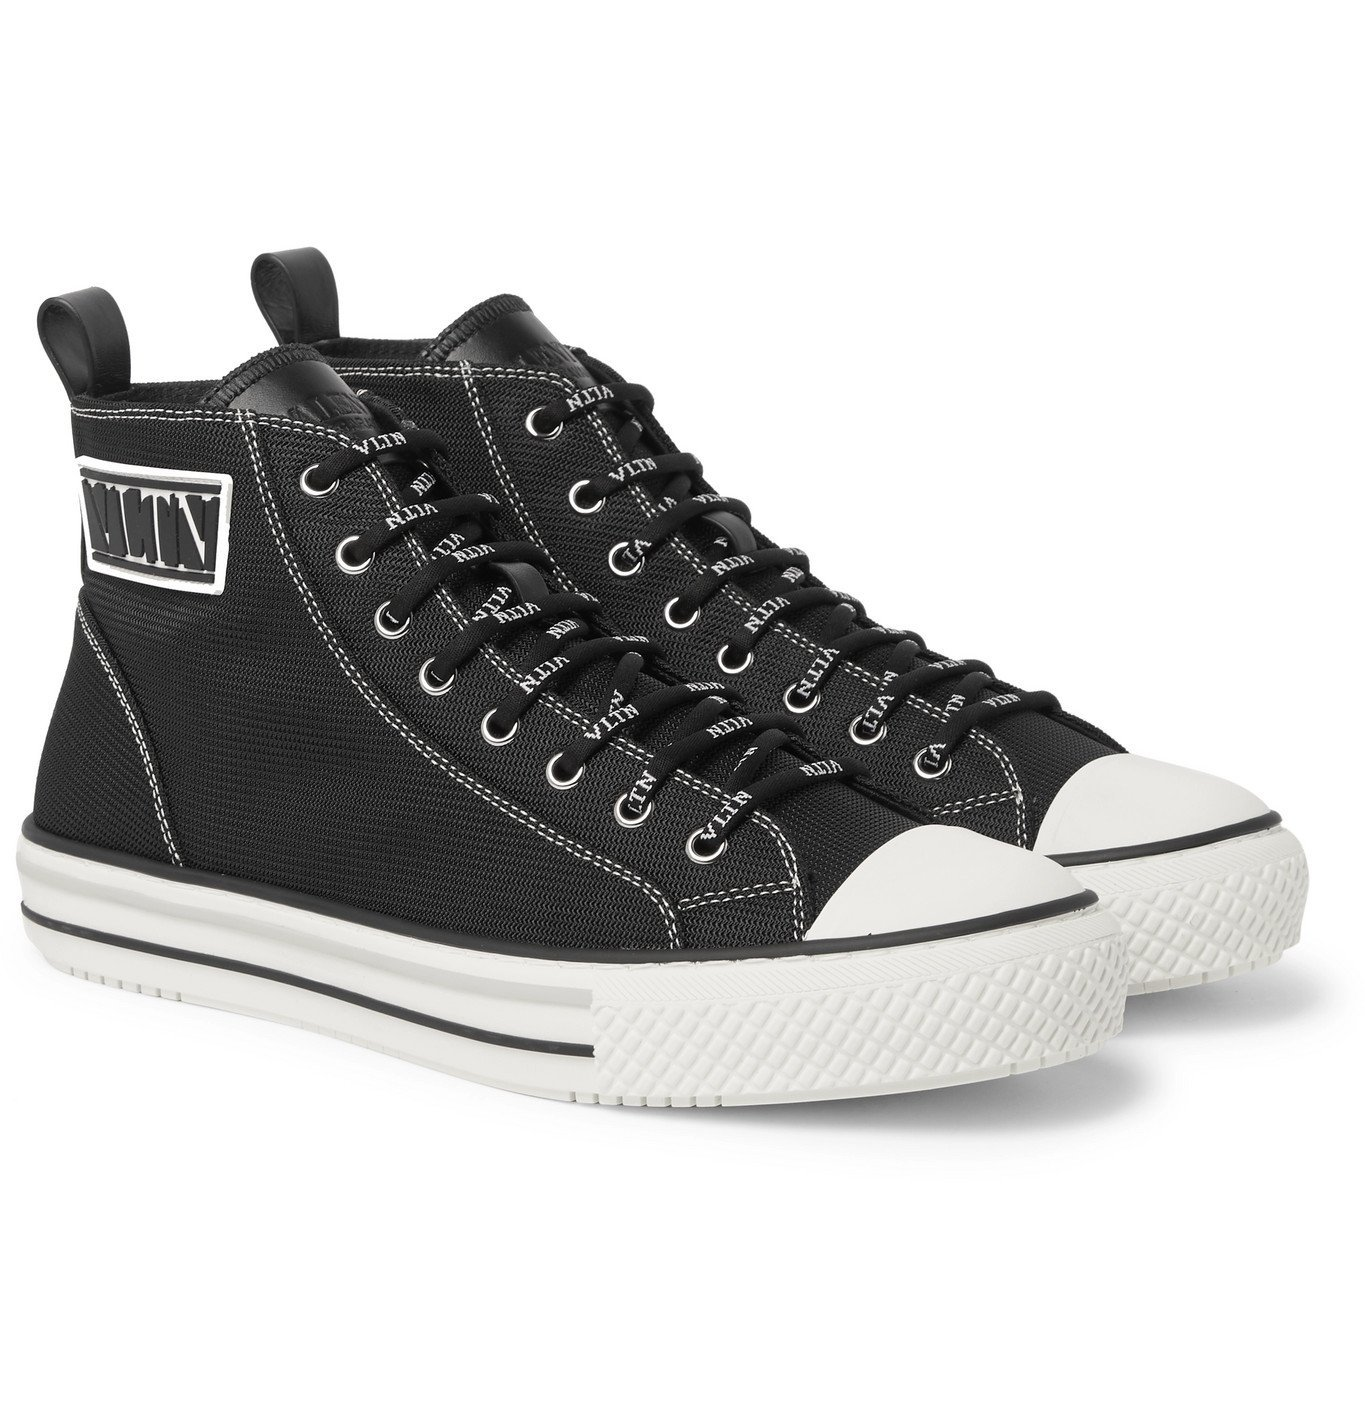 Valentino - Valentino Garavani Logo-Detailed Tech-Canvas High-Top Sneakers - Black